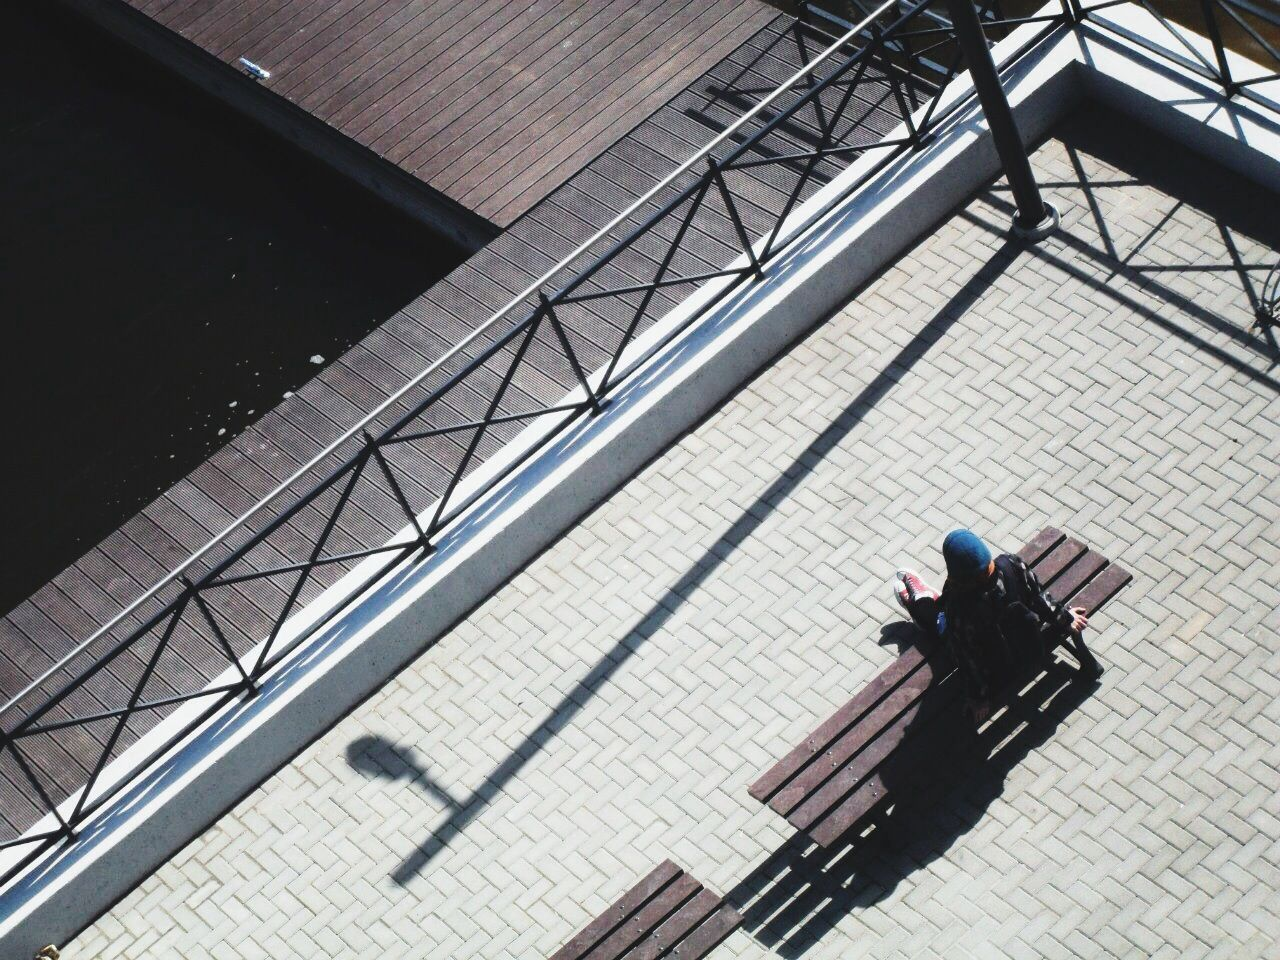 High angle view of a person sitting on a bench